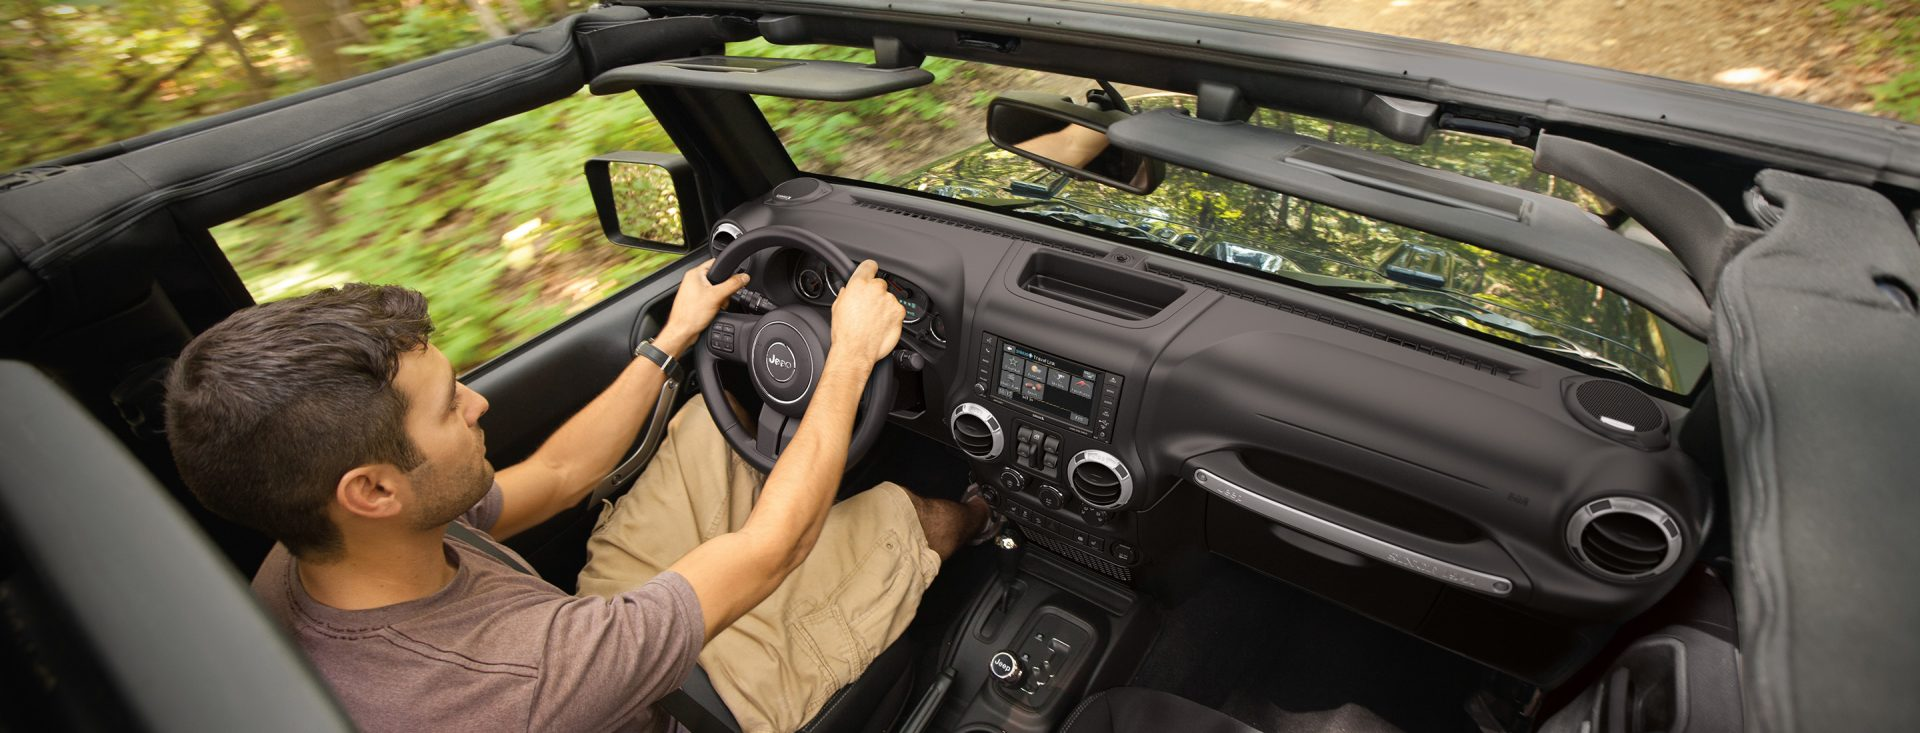 2017 Jeep Wrangler Unlimited Interior Hero